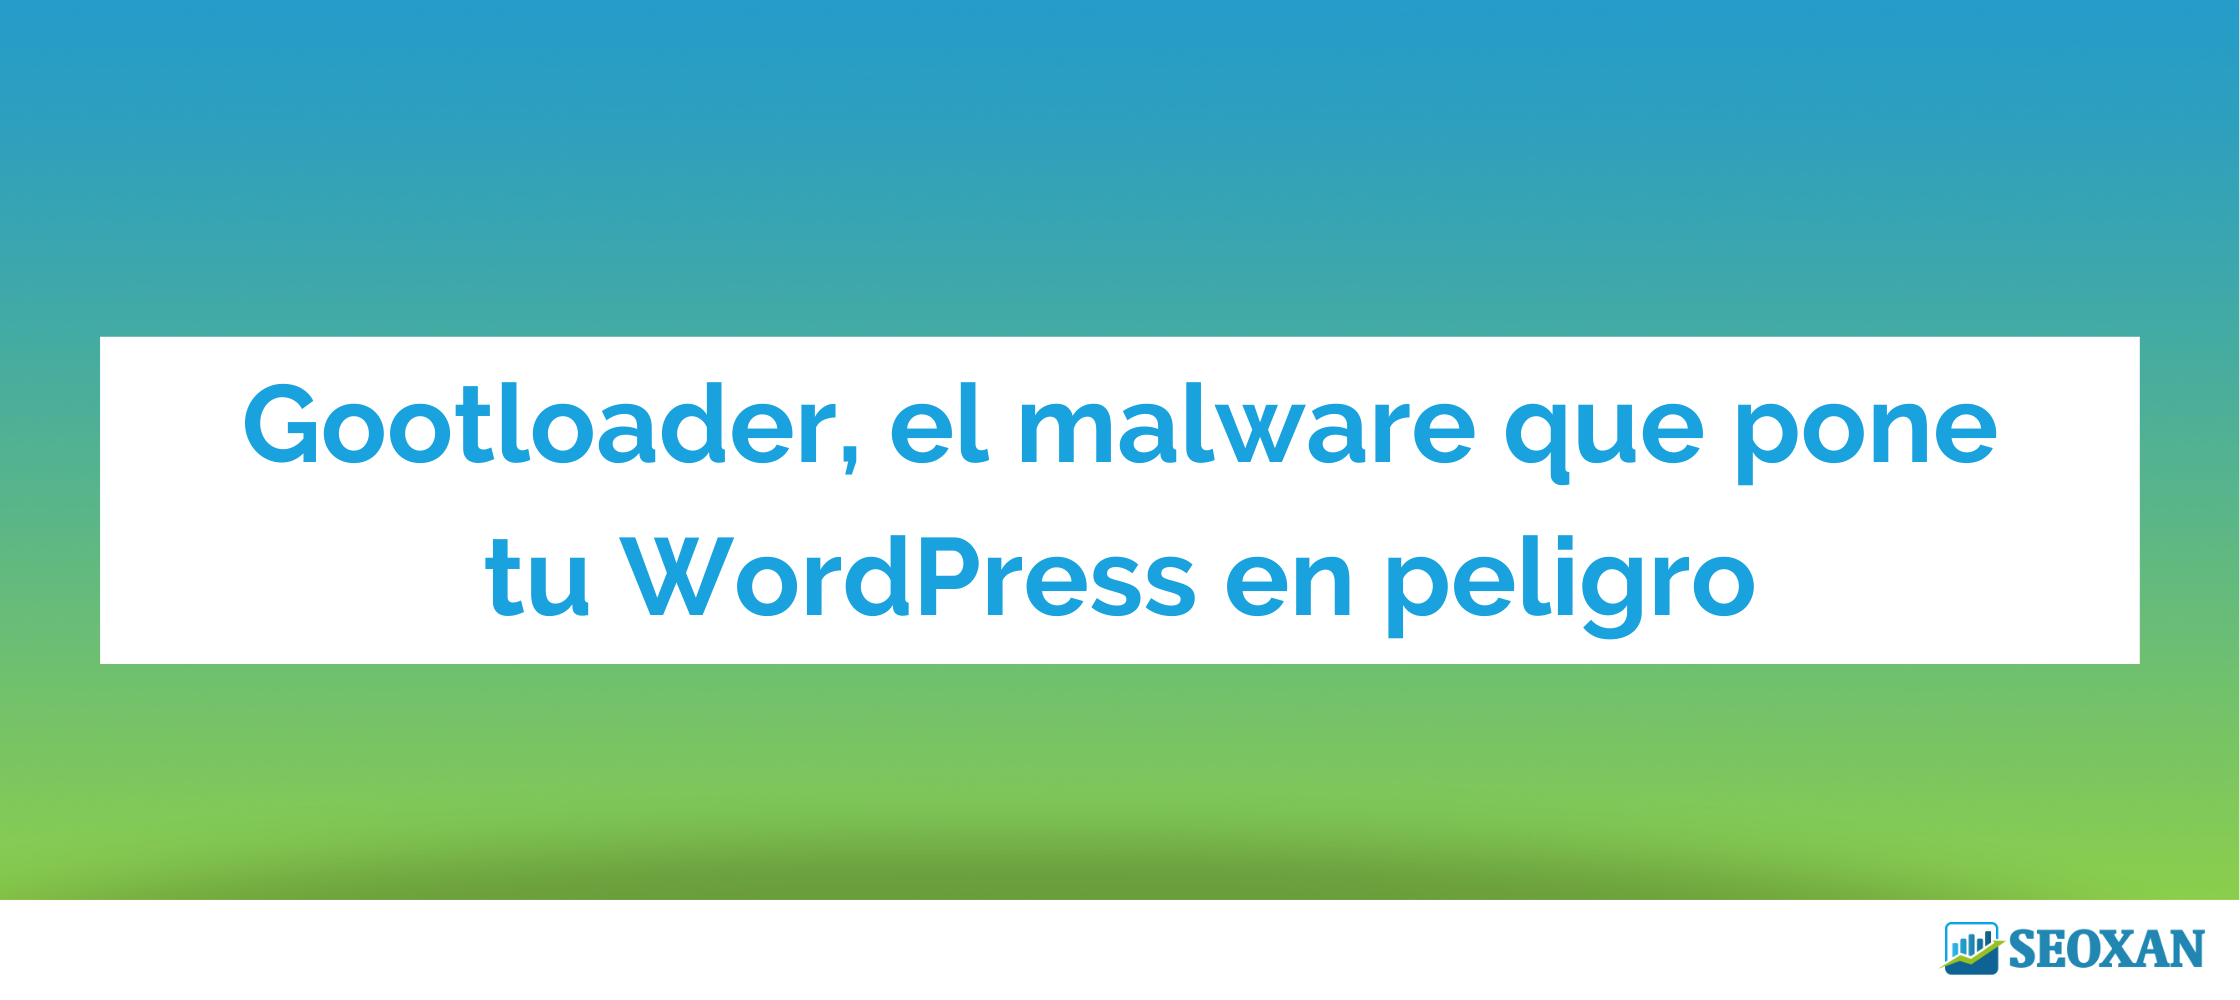 Gootloader malware wordpress